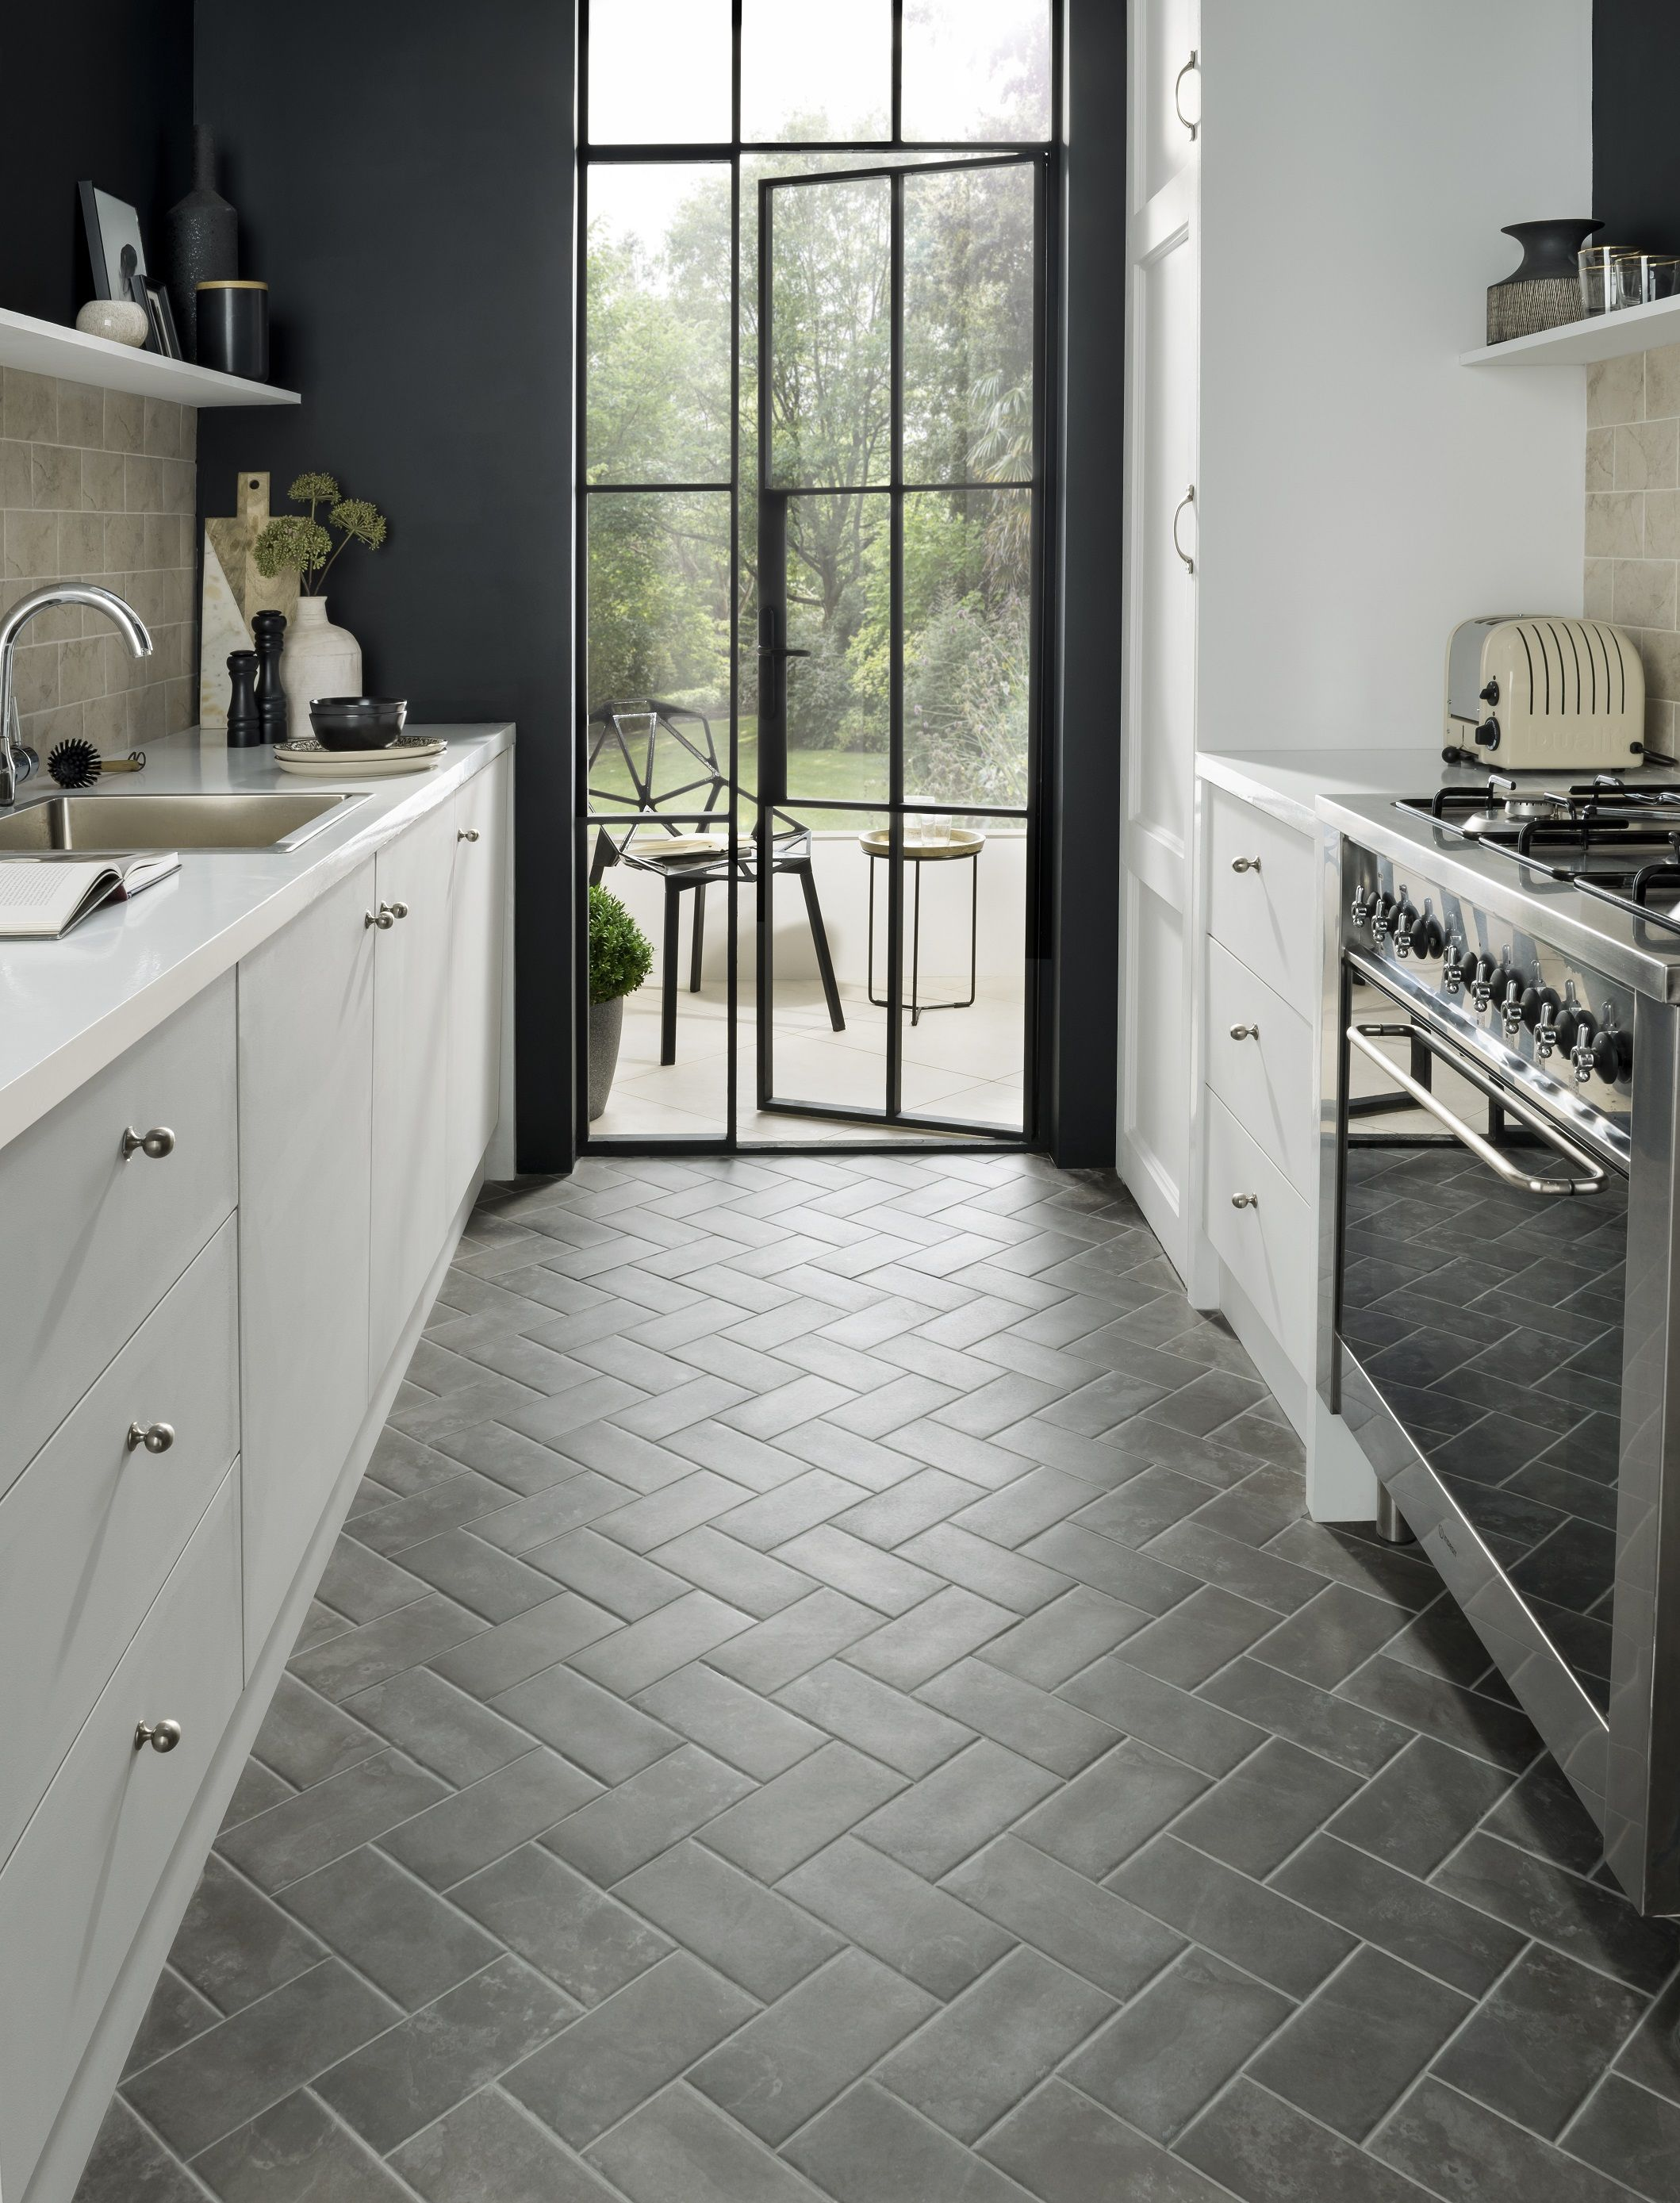 11 Tile Design Ideas To Make A Small Kitchen Feel Bigger Kitchen